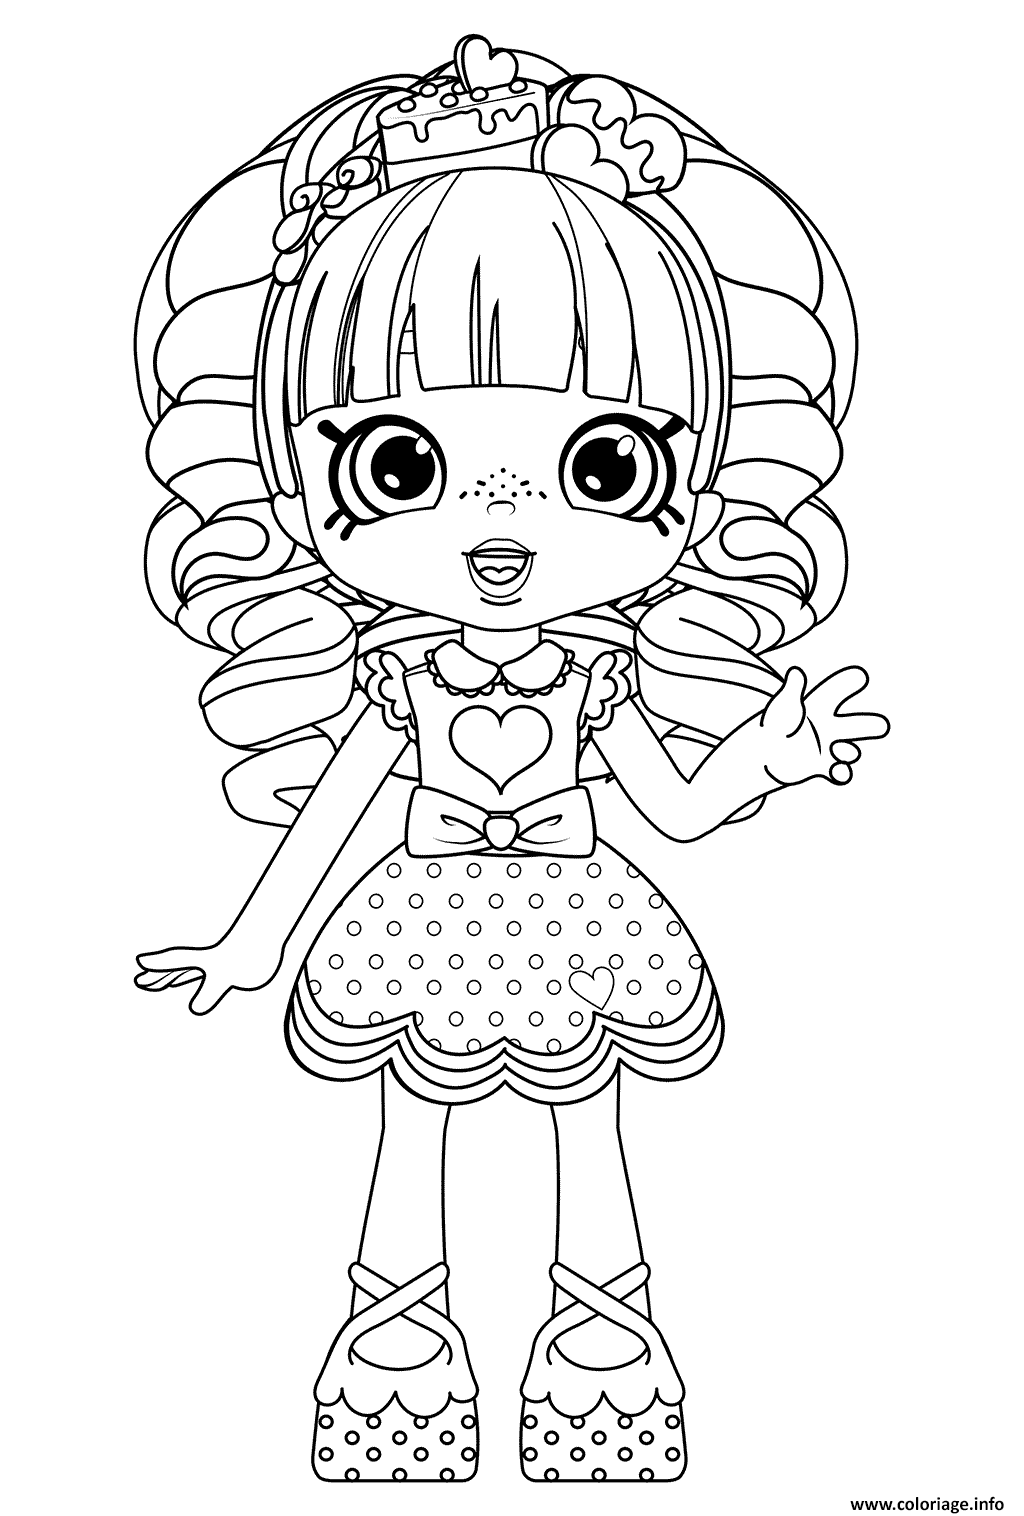 Coloriage Rainbow Kate Shopkins Dolls Dessin à Imprimer